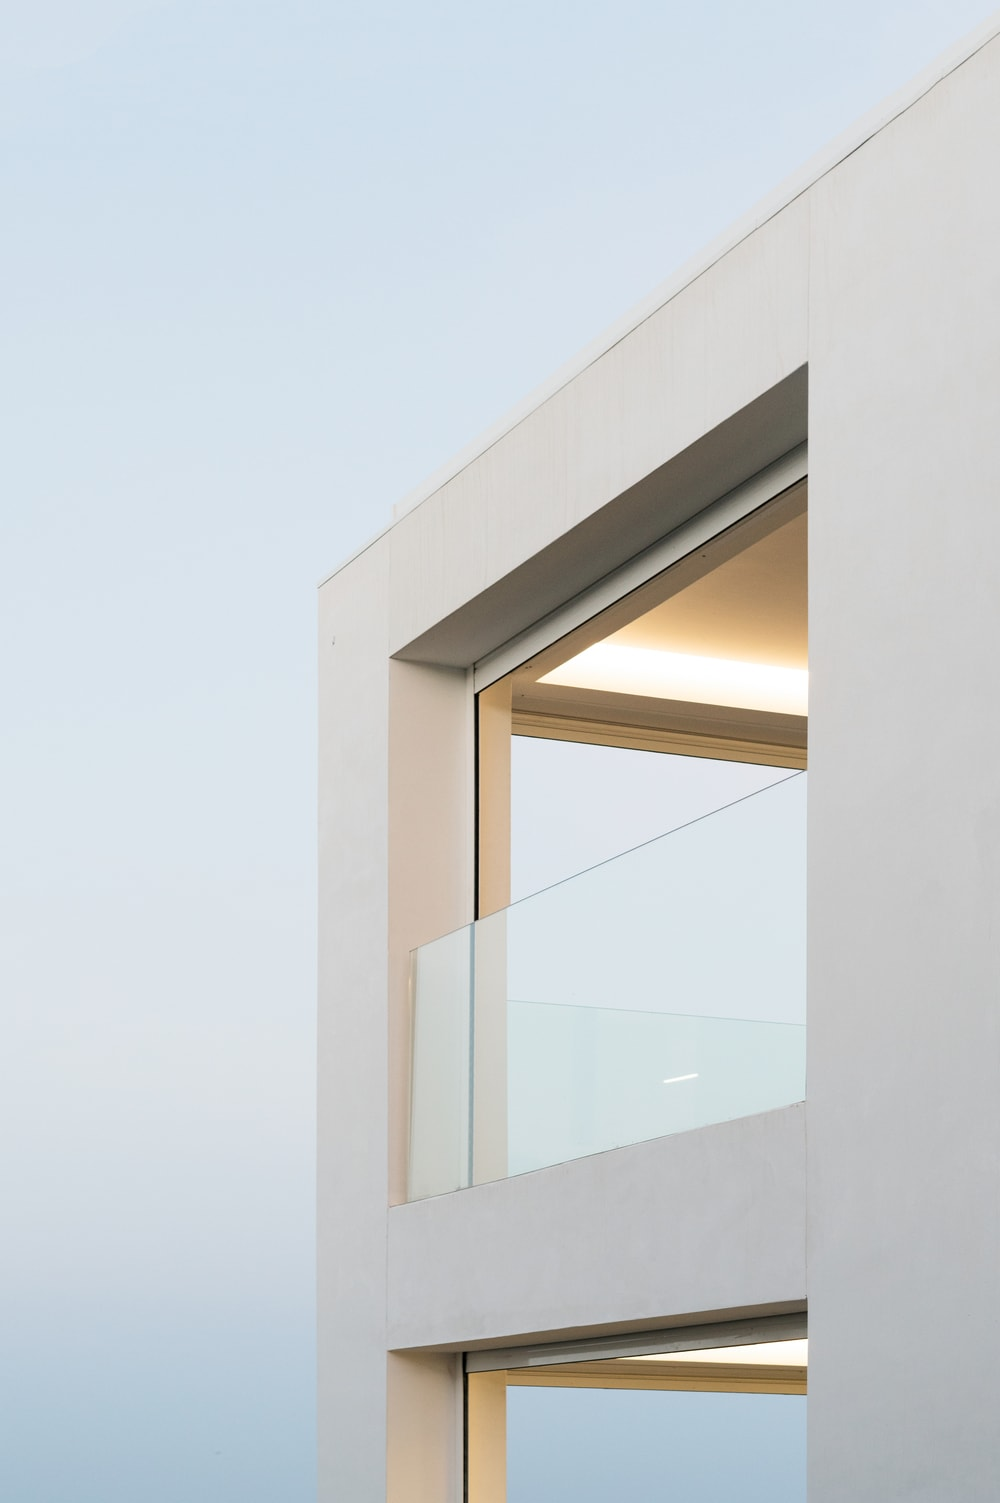 The second-floor balcony has lovely low glass walls to serve as railings in order to maximize the view and provide safety as well.